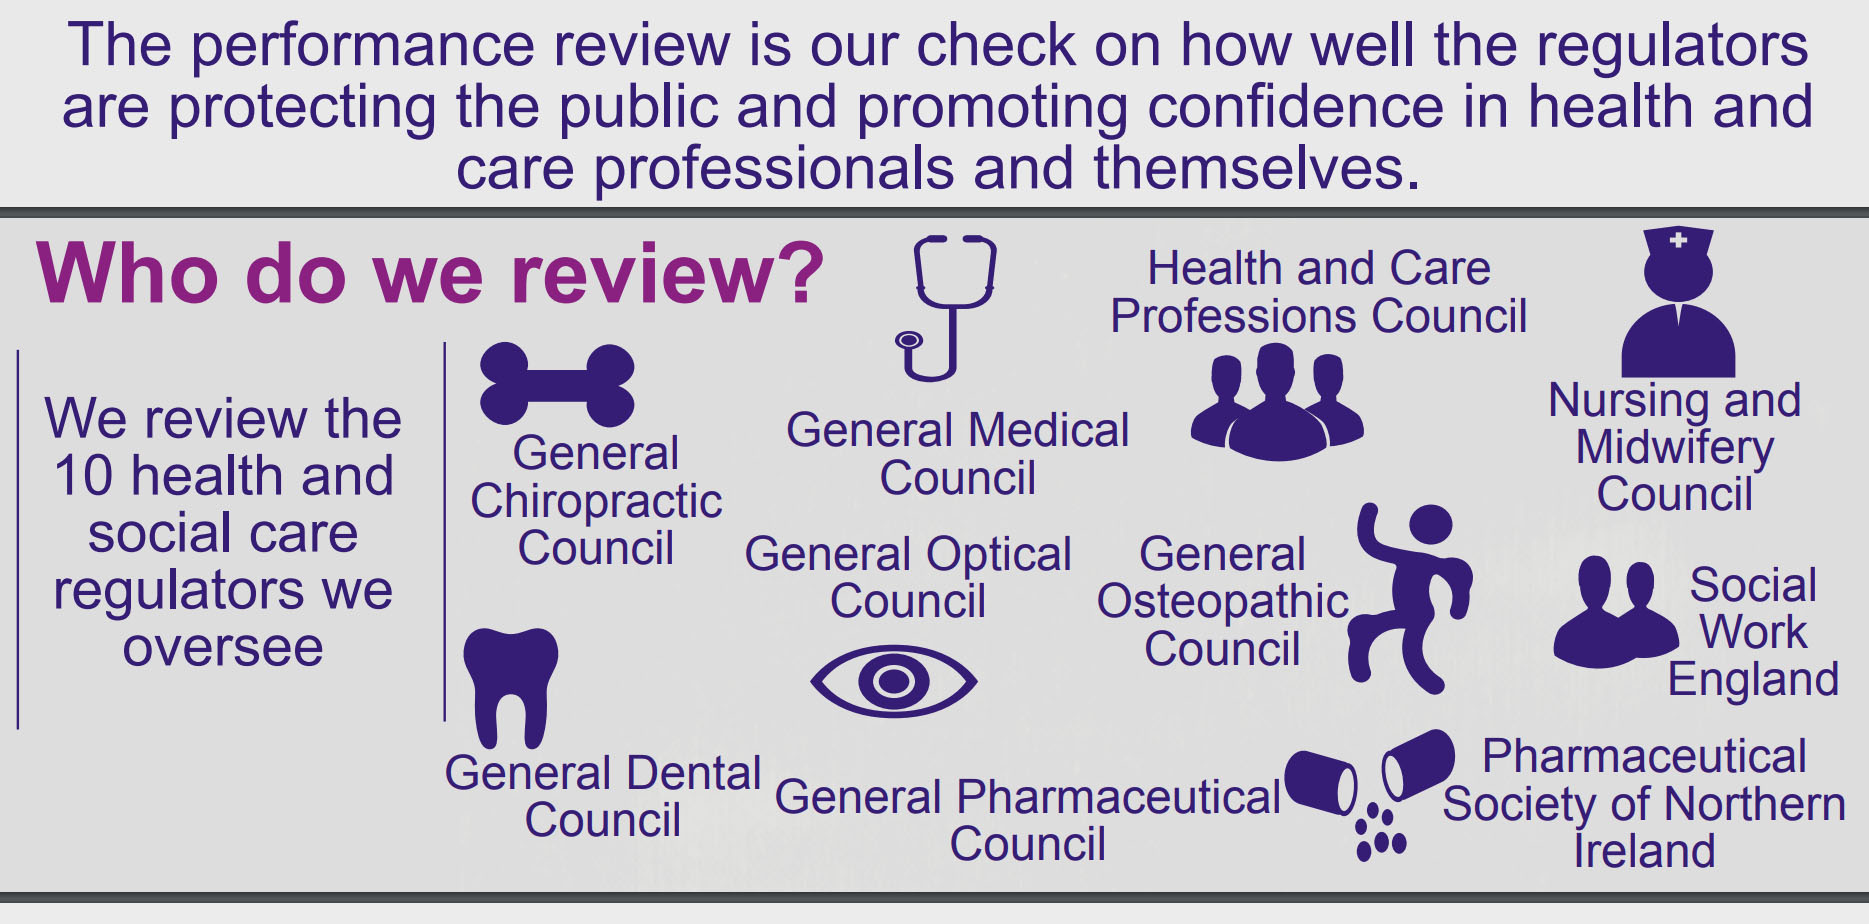 Reviewing the regulators - performance review process